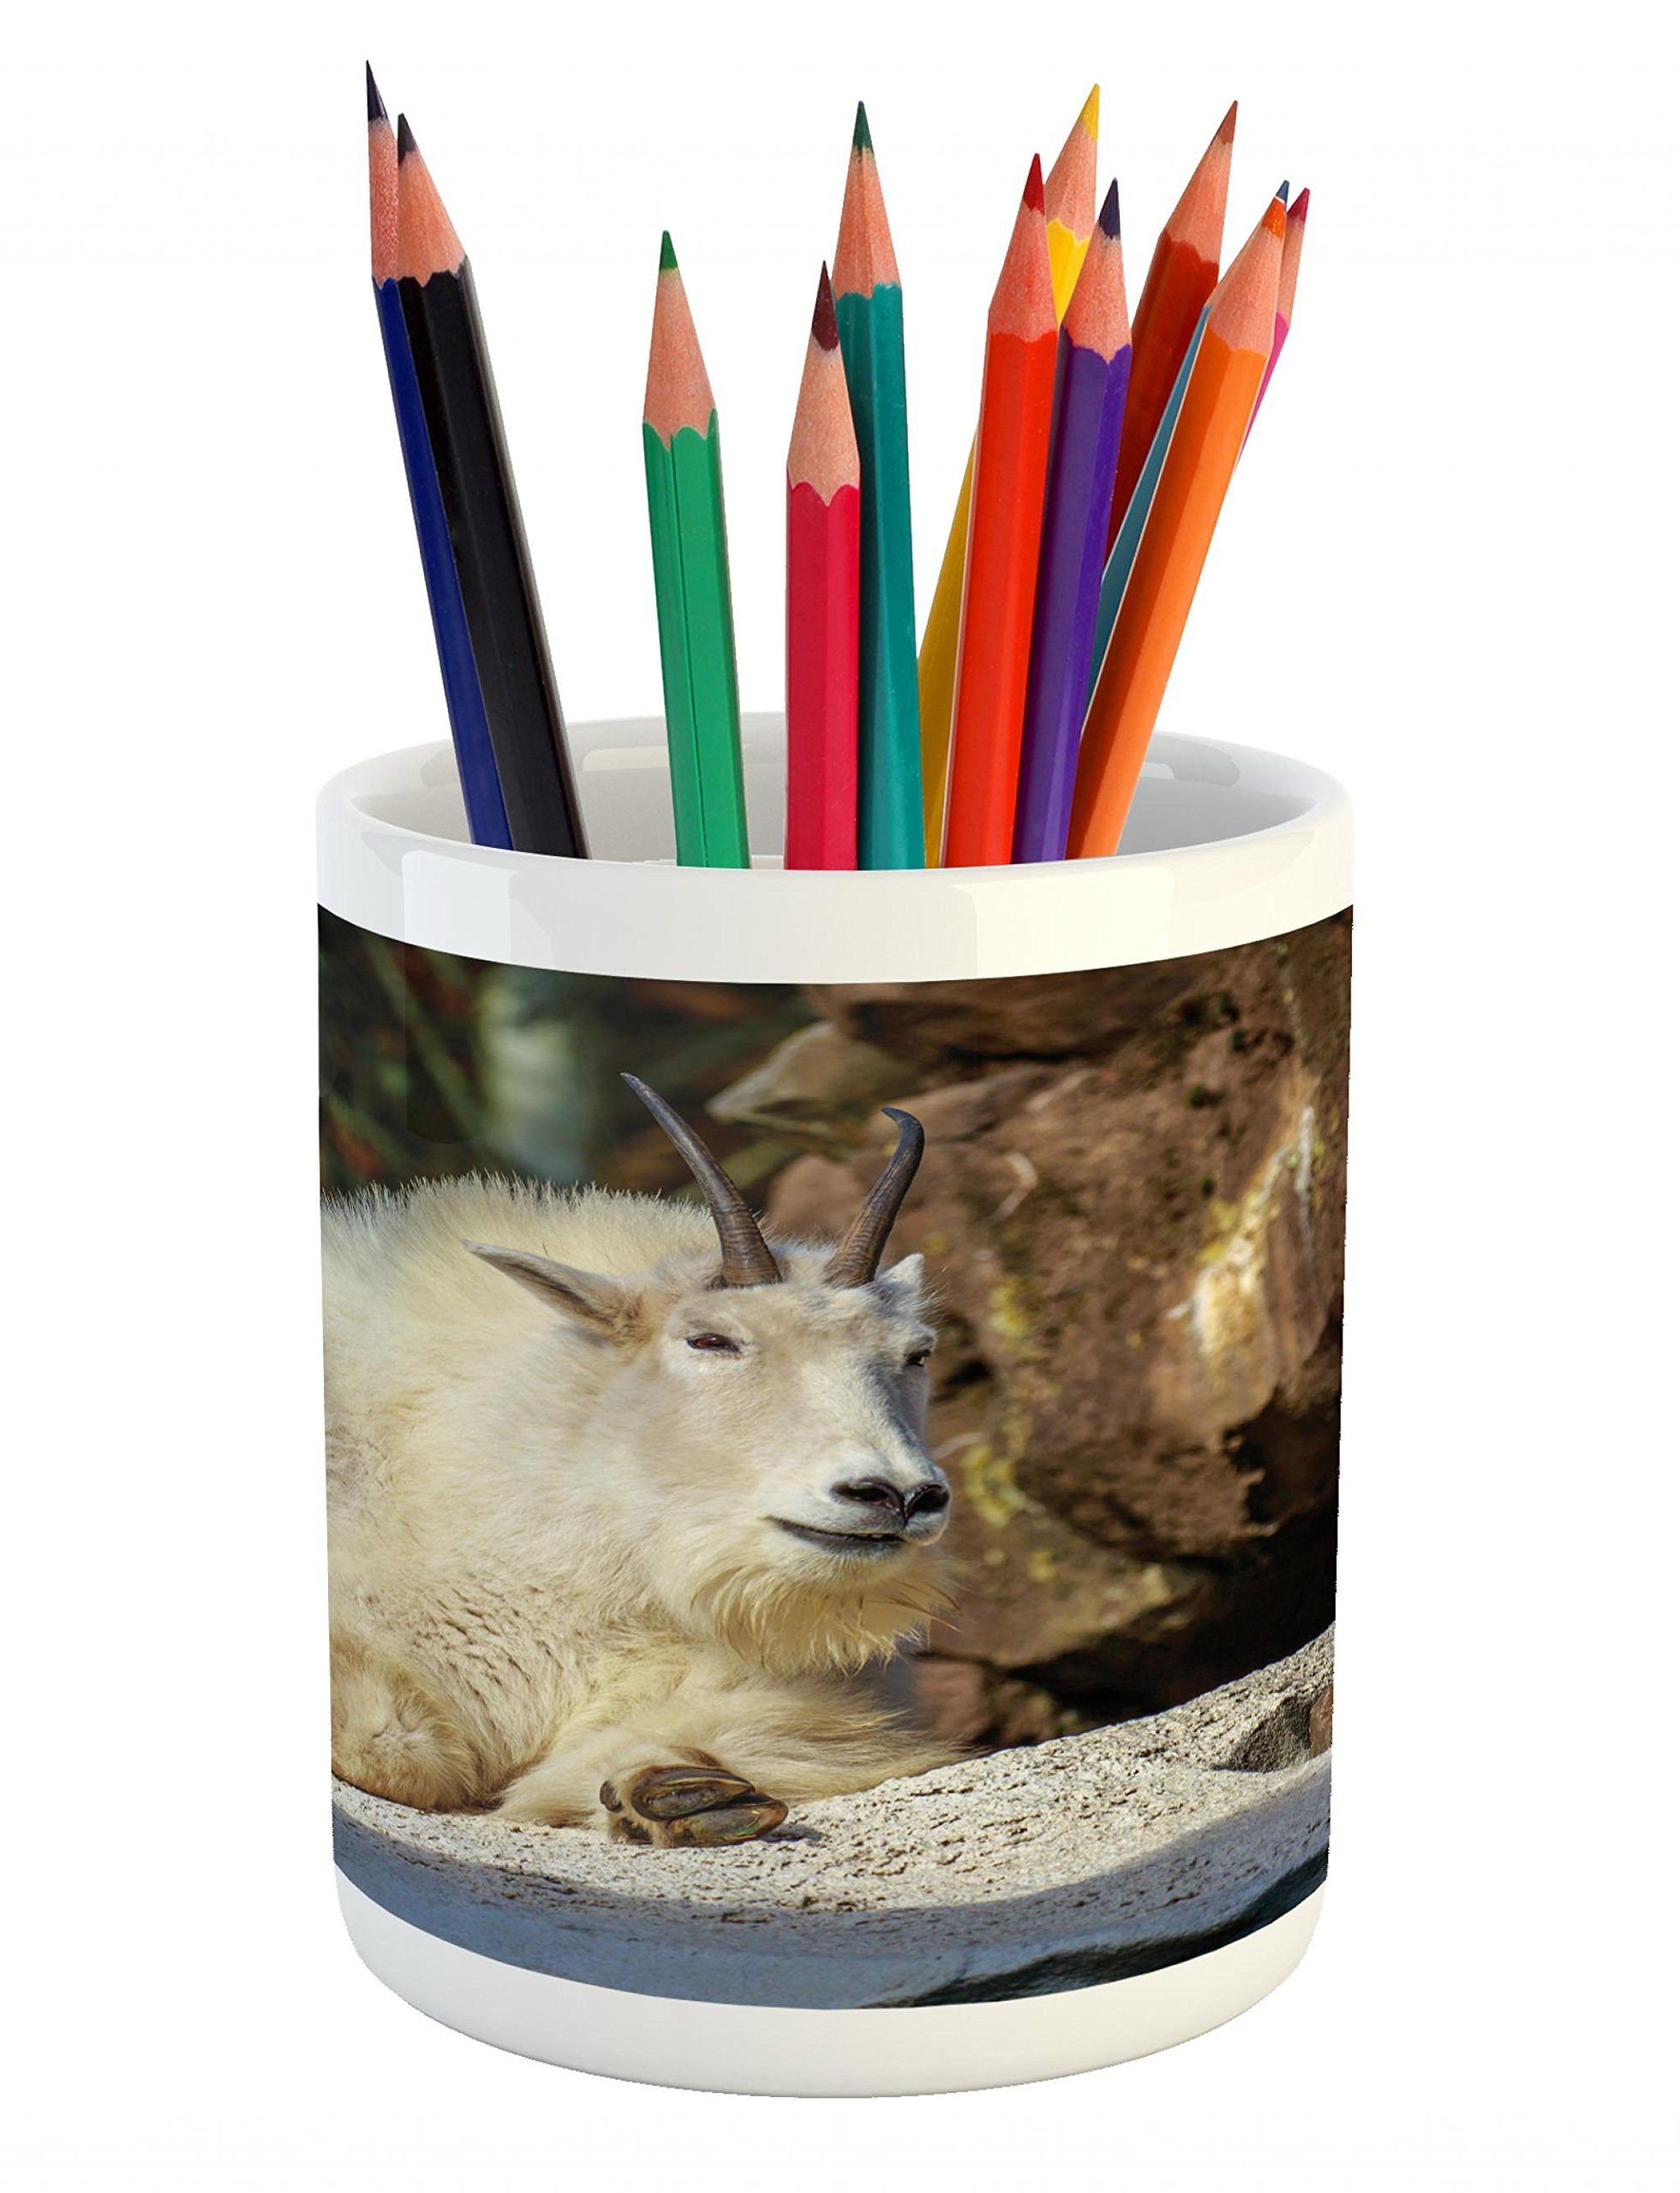 Lunarable Goat Pencil Pen Holder, White Mountain Goat Sunbathing on a Rocky Slope Idyllic North America Scene, Printed Ceramic Pencil Pen Holder for Desk Office Accessory, Brown Cream and Grey